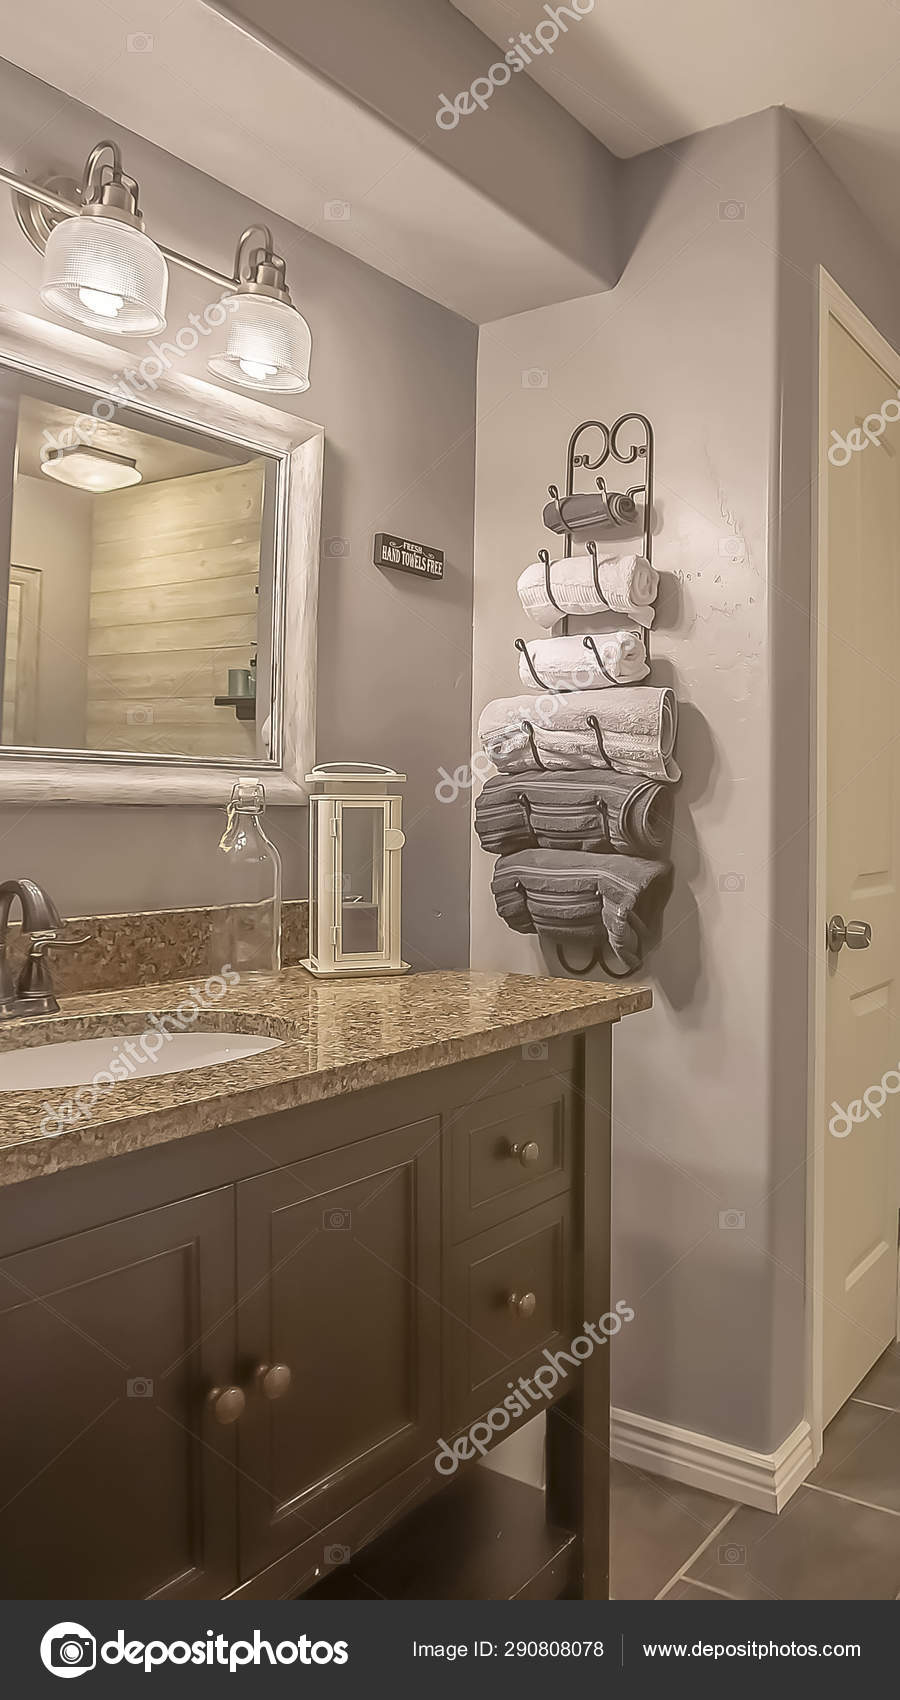 vertical mirror and lamps above the vanity inside a bathroom with towel rack and shelves stock photo image by c dropthepress gmail com 290808078